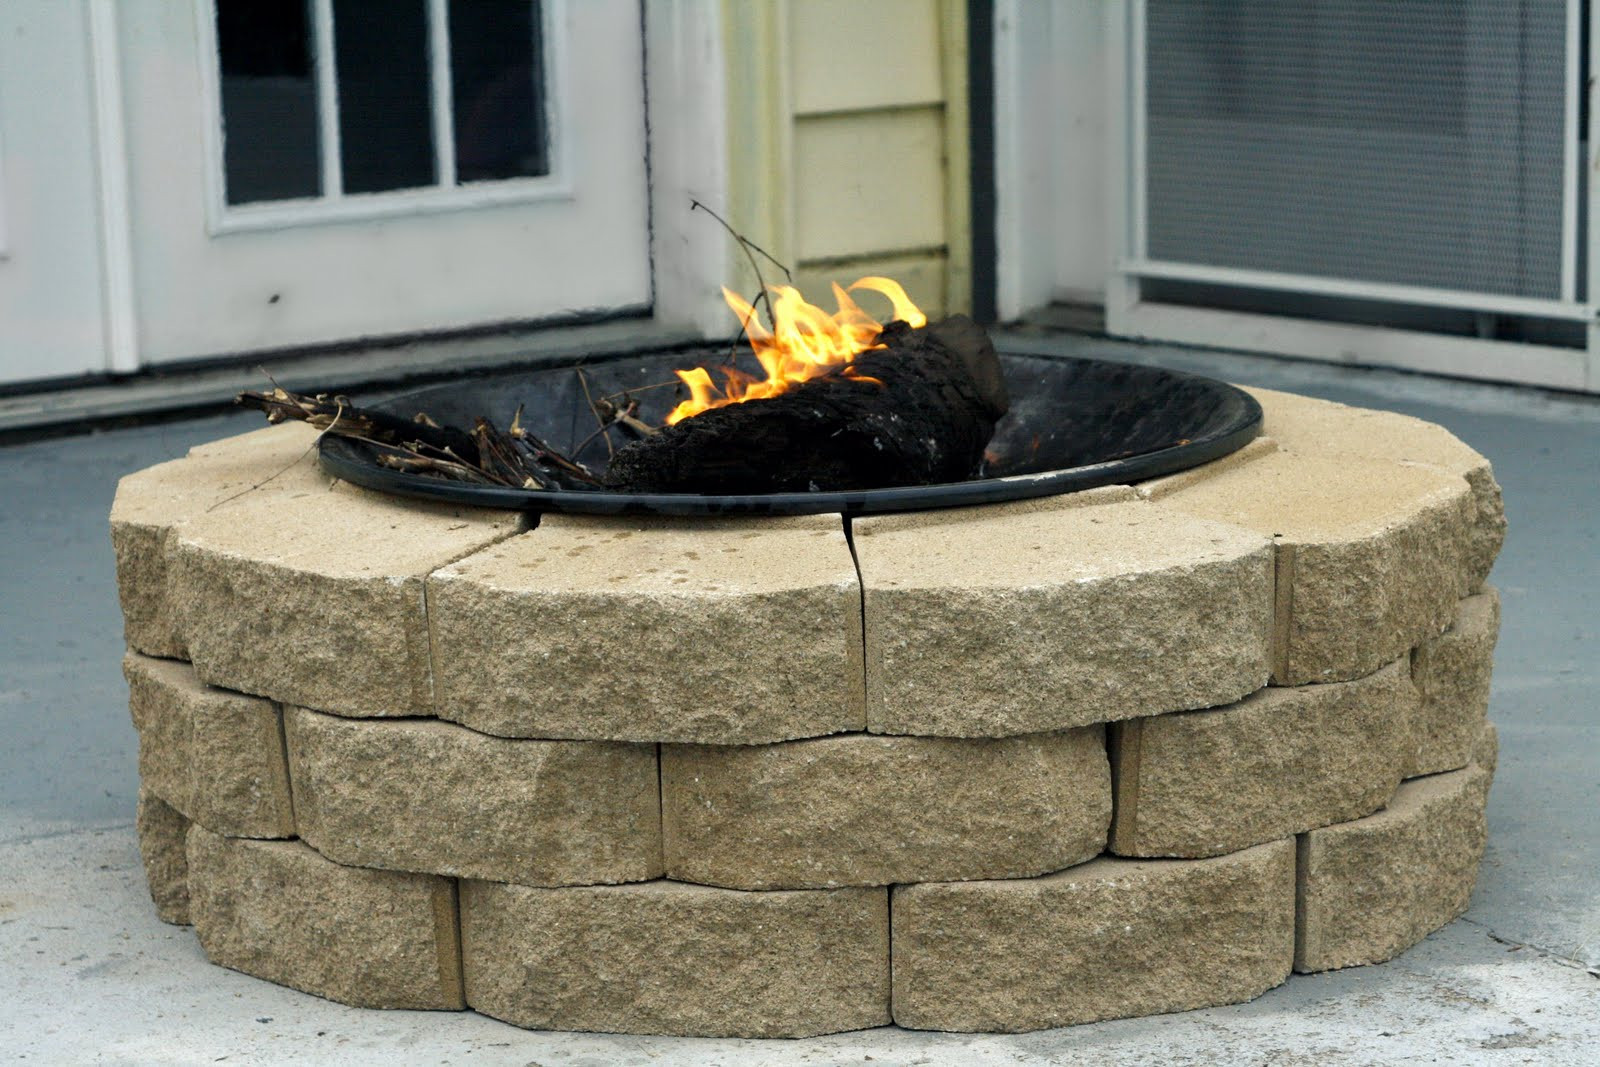 Best ideas about Fire Pits DIY . Save or Pin Always Chasing Life DIY Fire Pit Now.